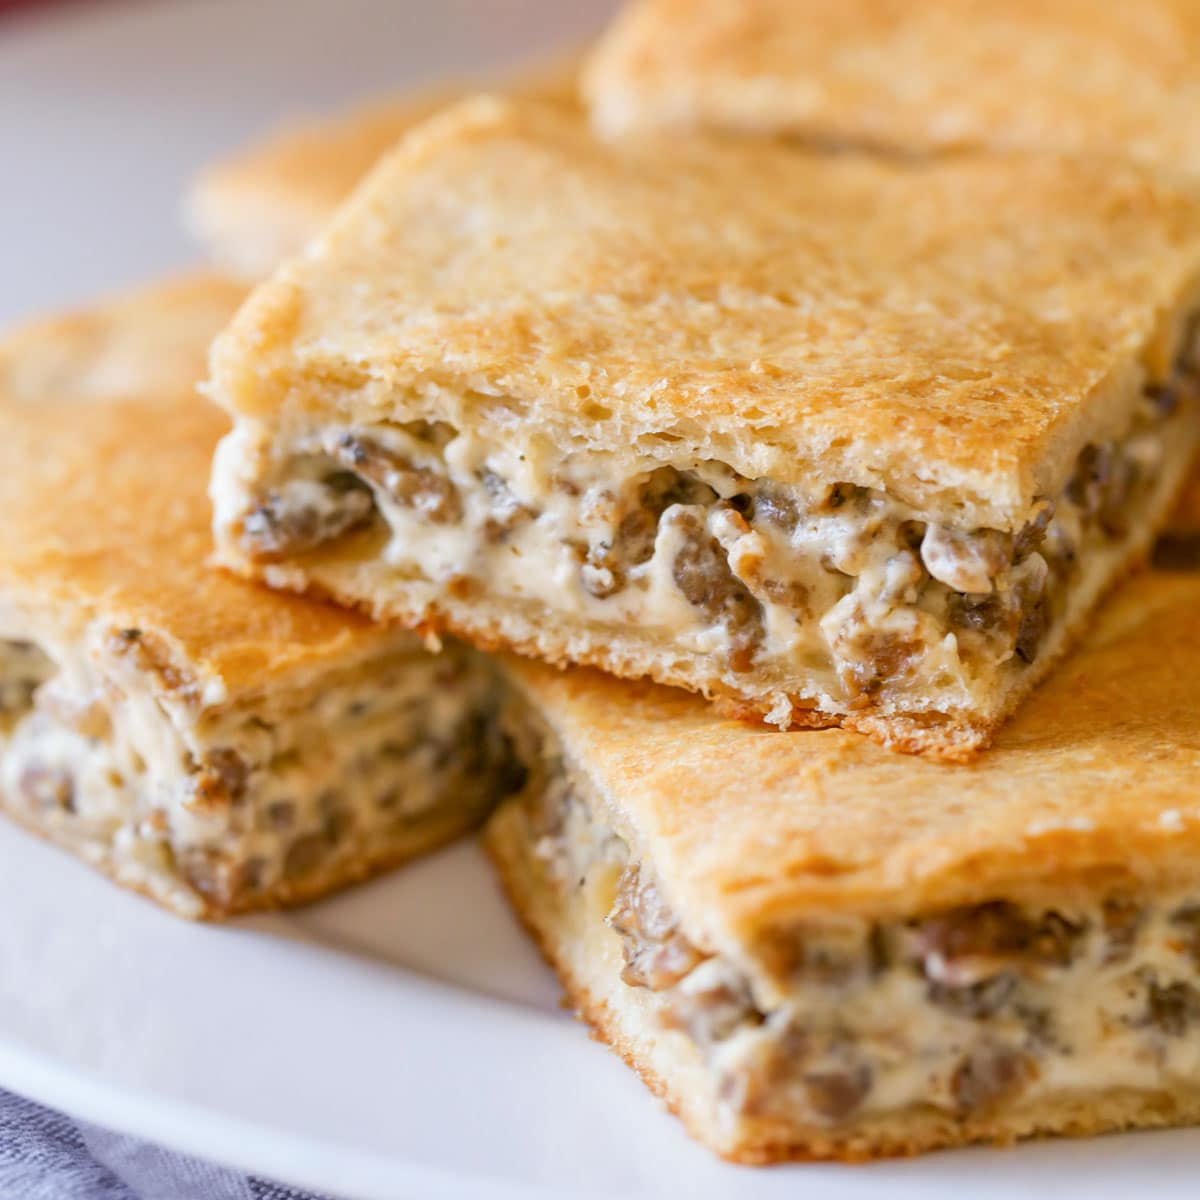 Sausage cream cheese casserole sliced and served on a white platter